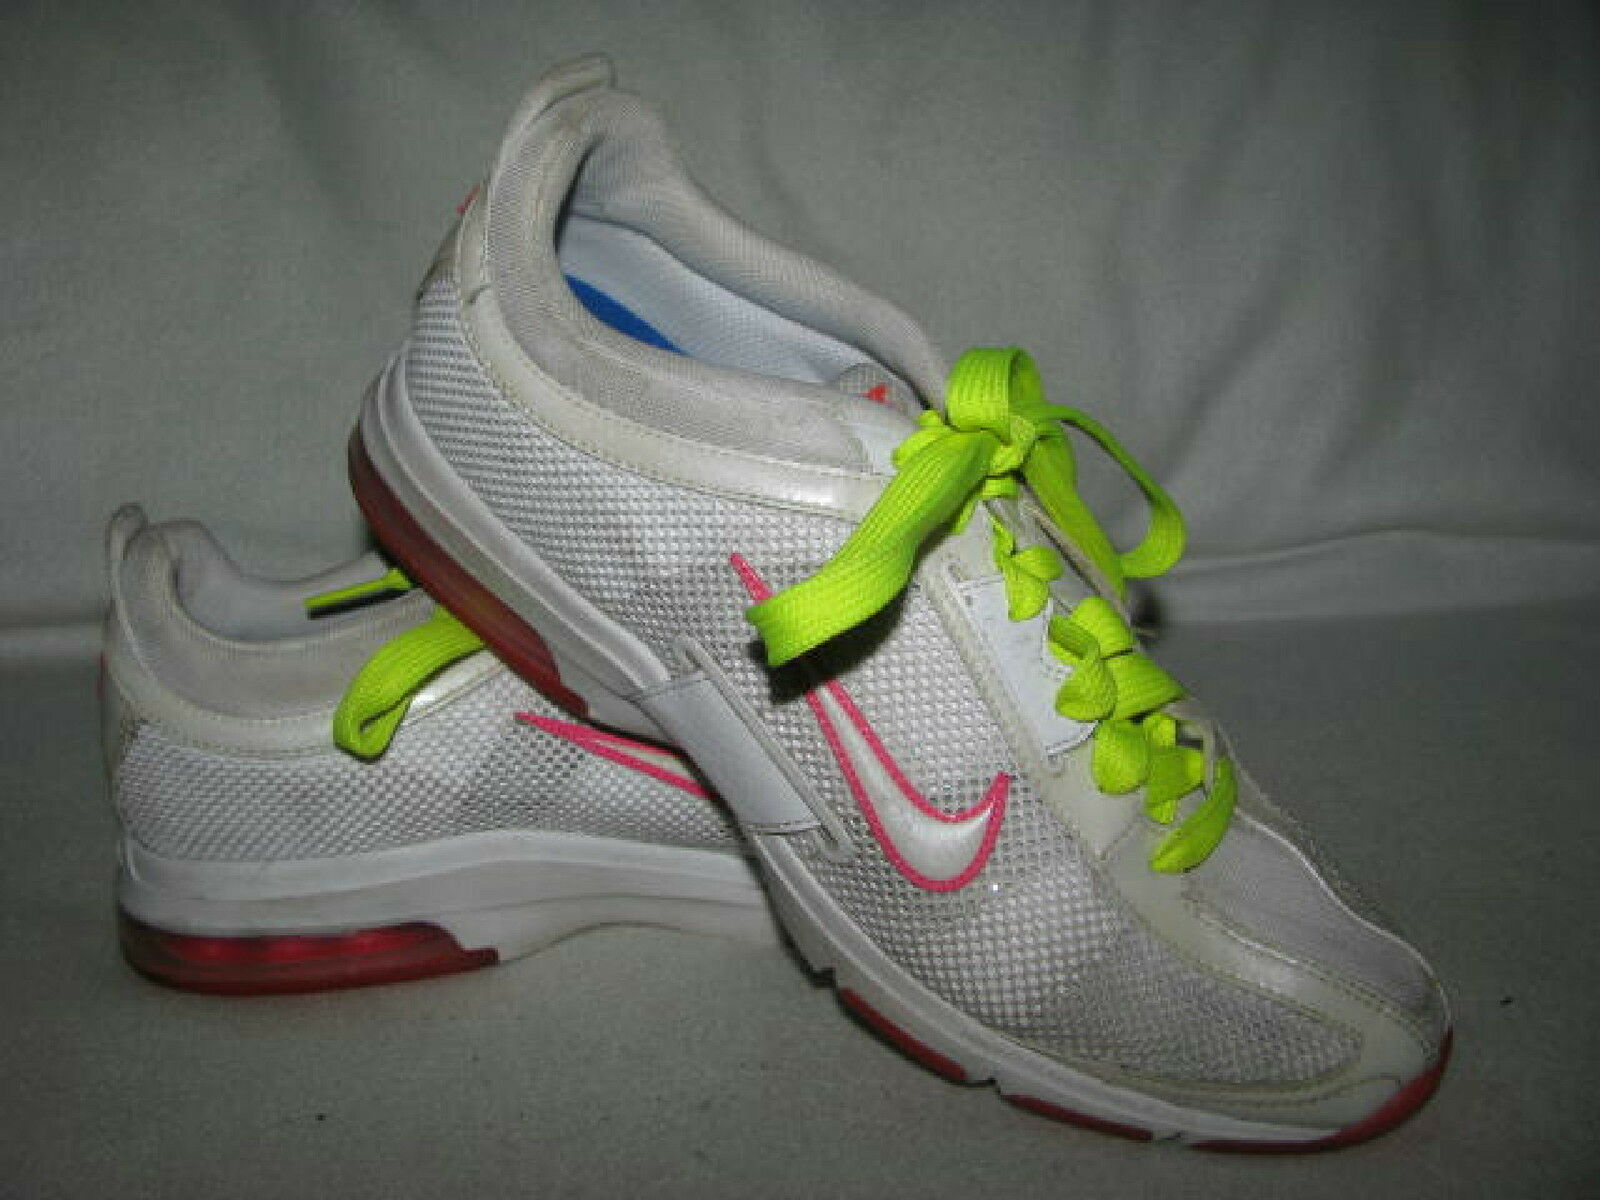 NIKE AIR MAX Essential Trainer Womens Sz 9 White Pink Sneakers 395739-111 The most popular shoes for men and women